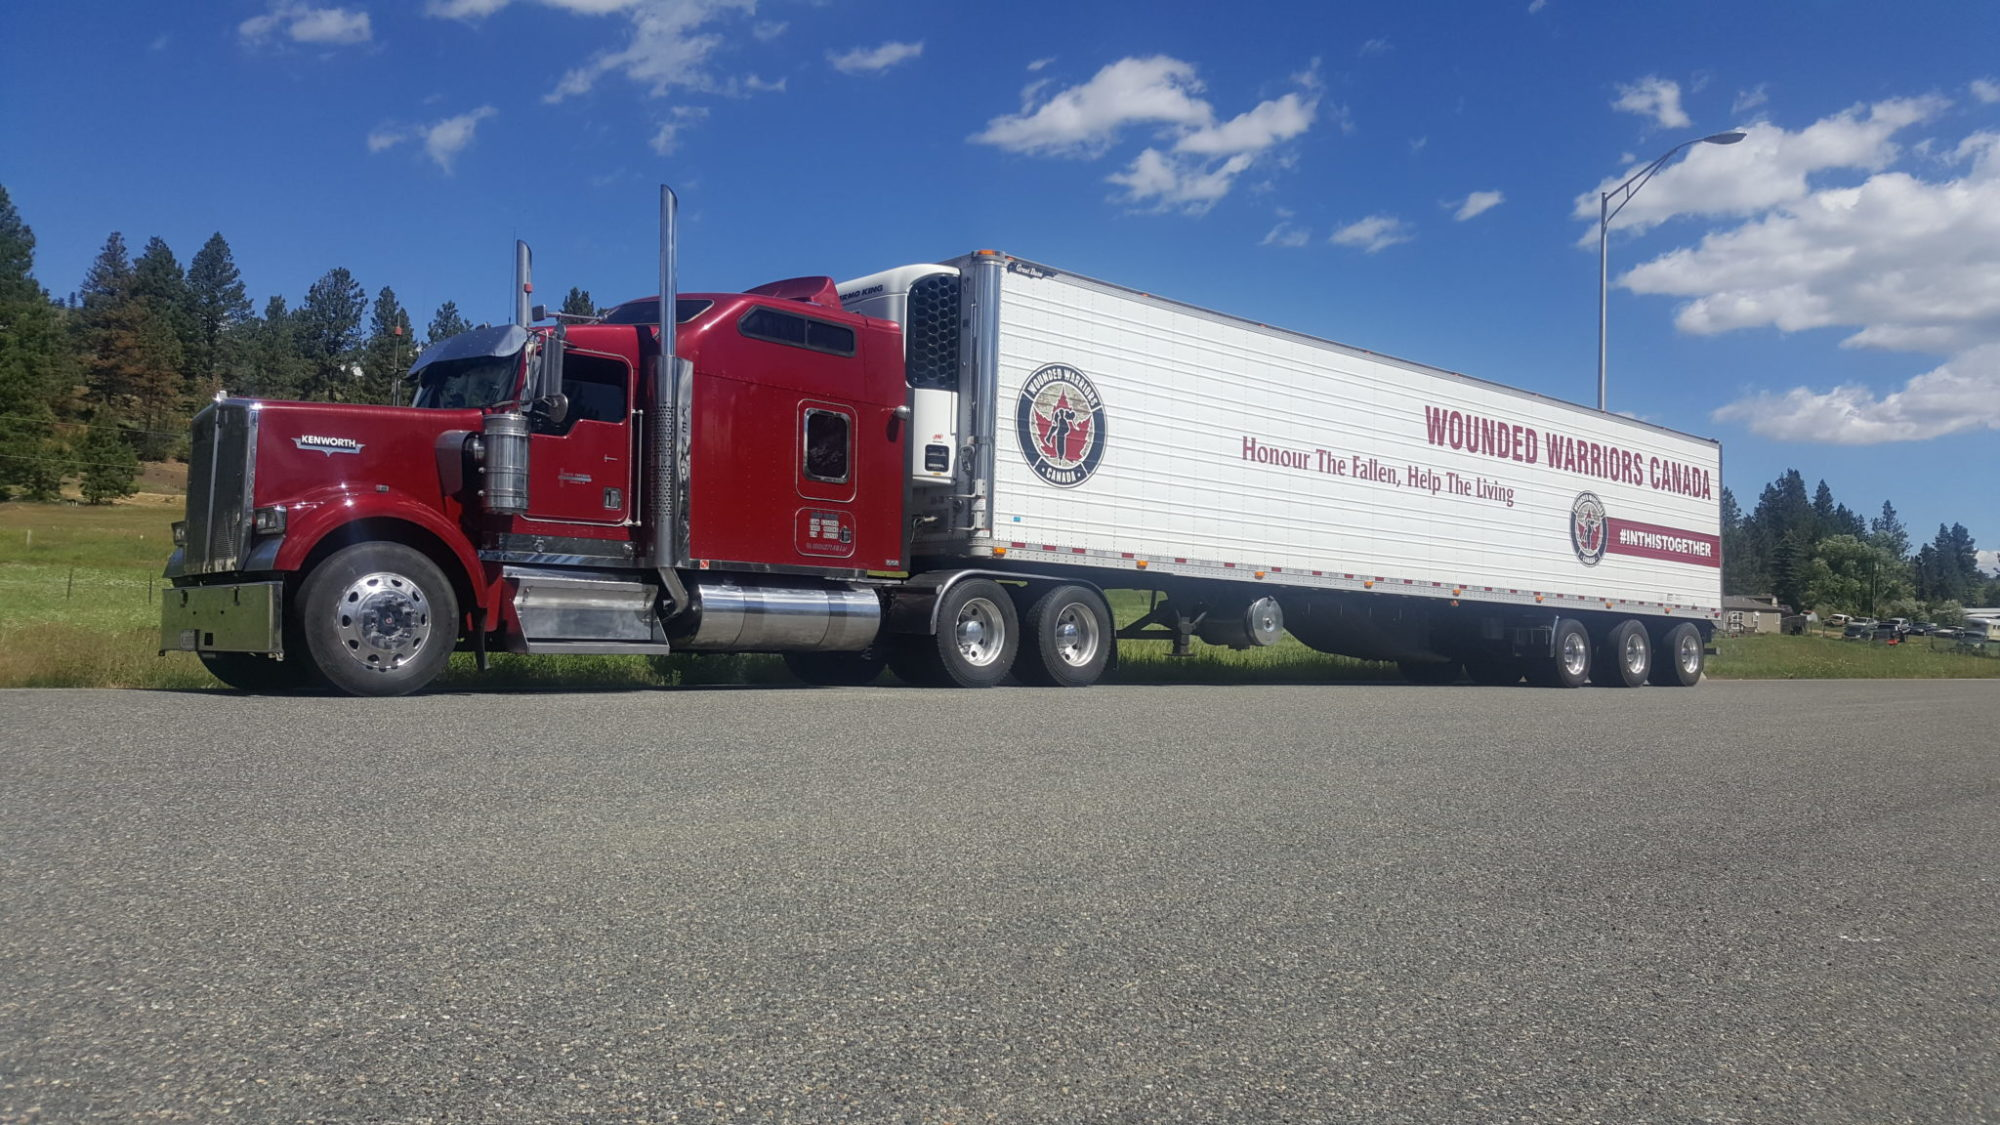 Faith Trucking vehicle graphics supporting Wounded Warriors Canada